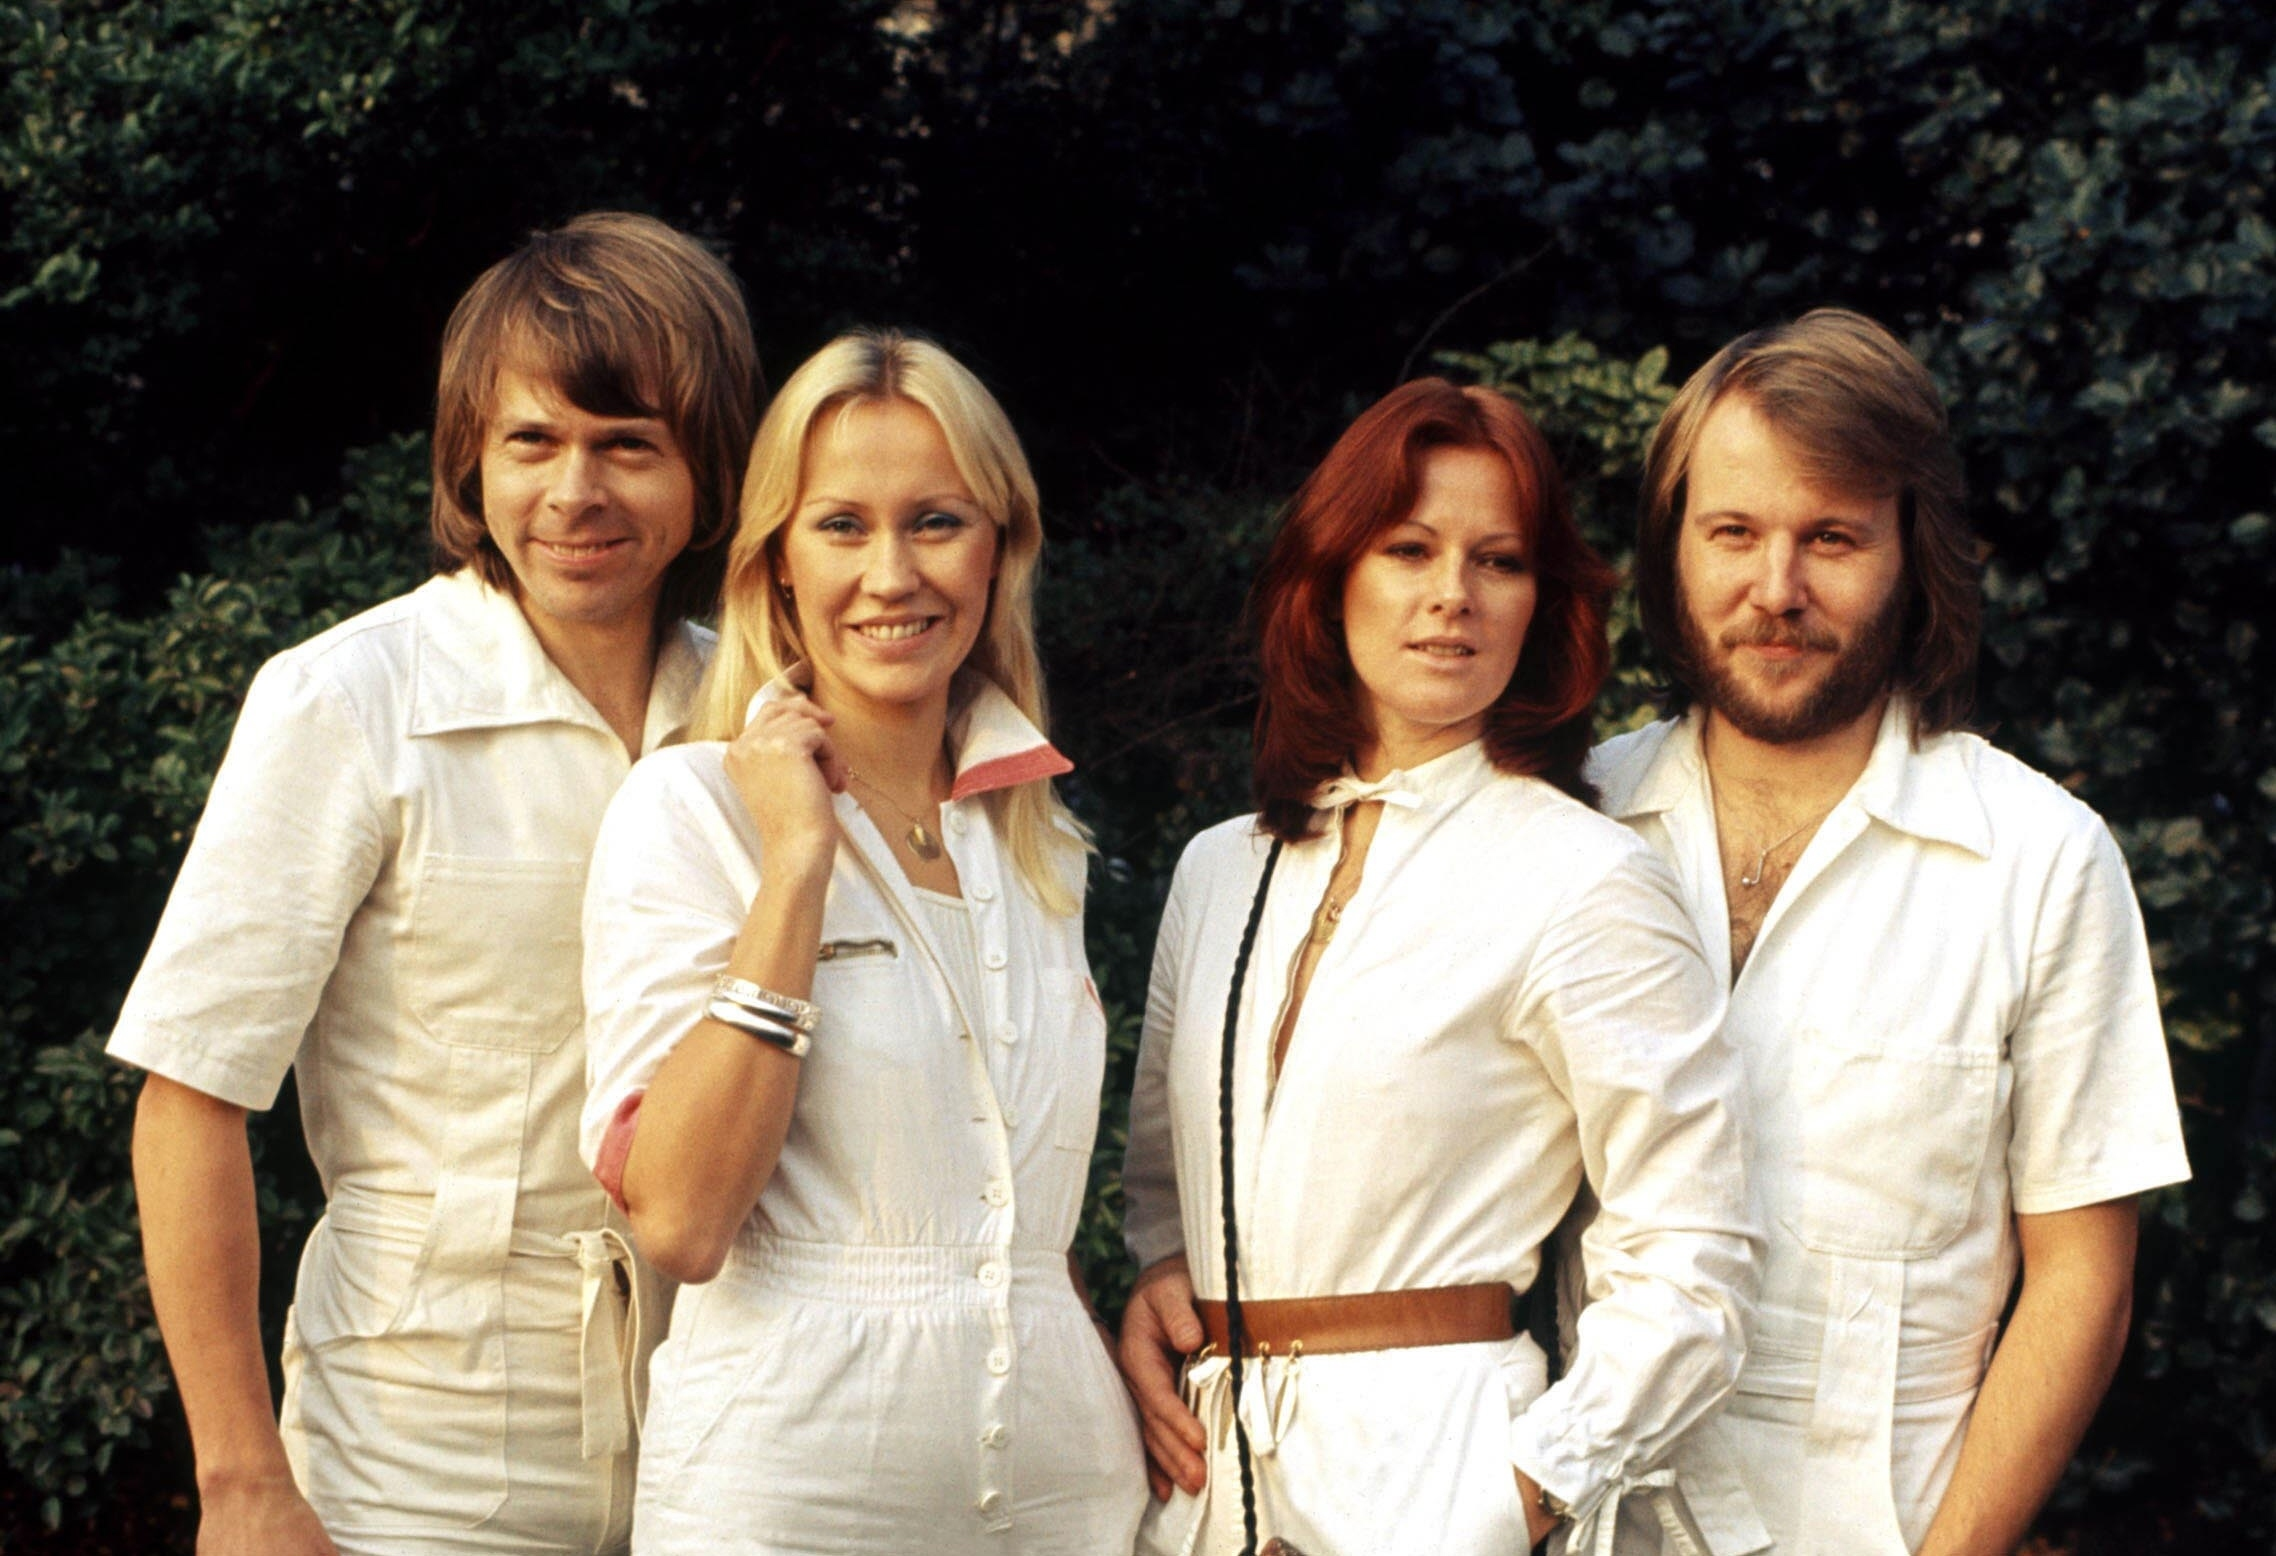 There's a sense of expectation hangin' in the Twitter air for this ABBA comeback. Click through to see some of the best reactions! (Photo: WENN)